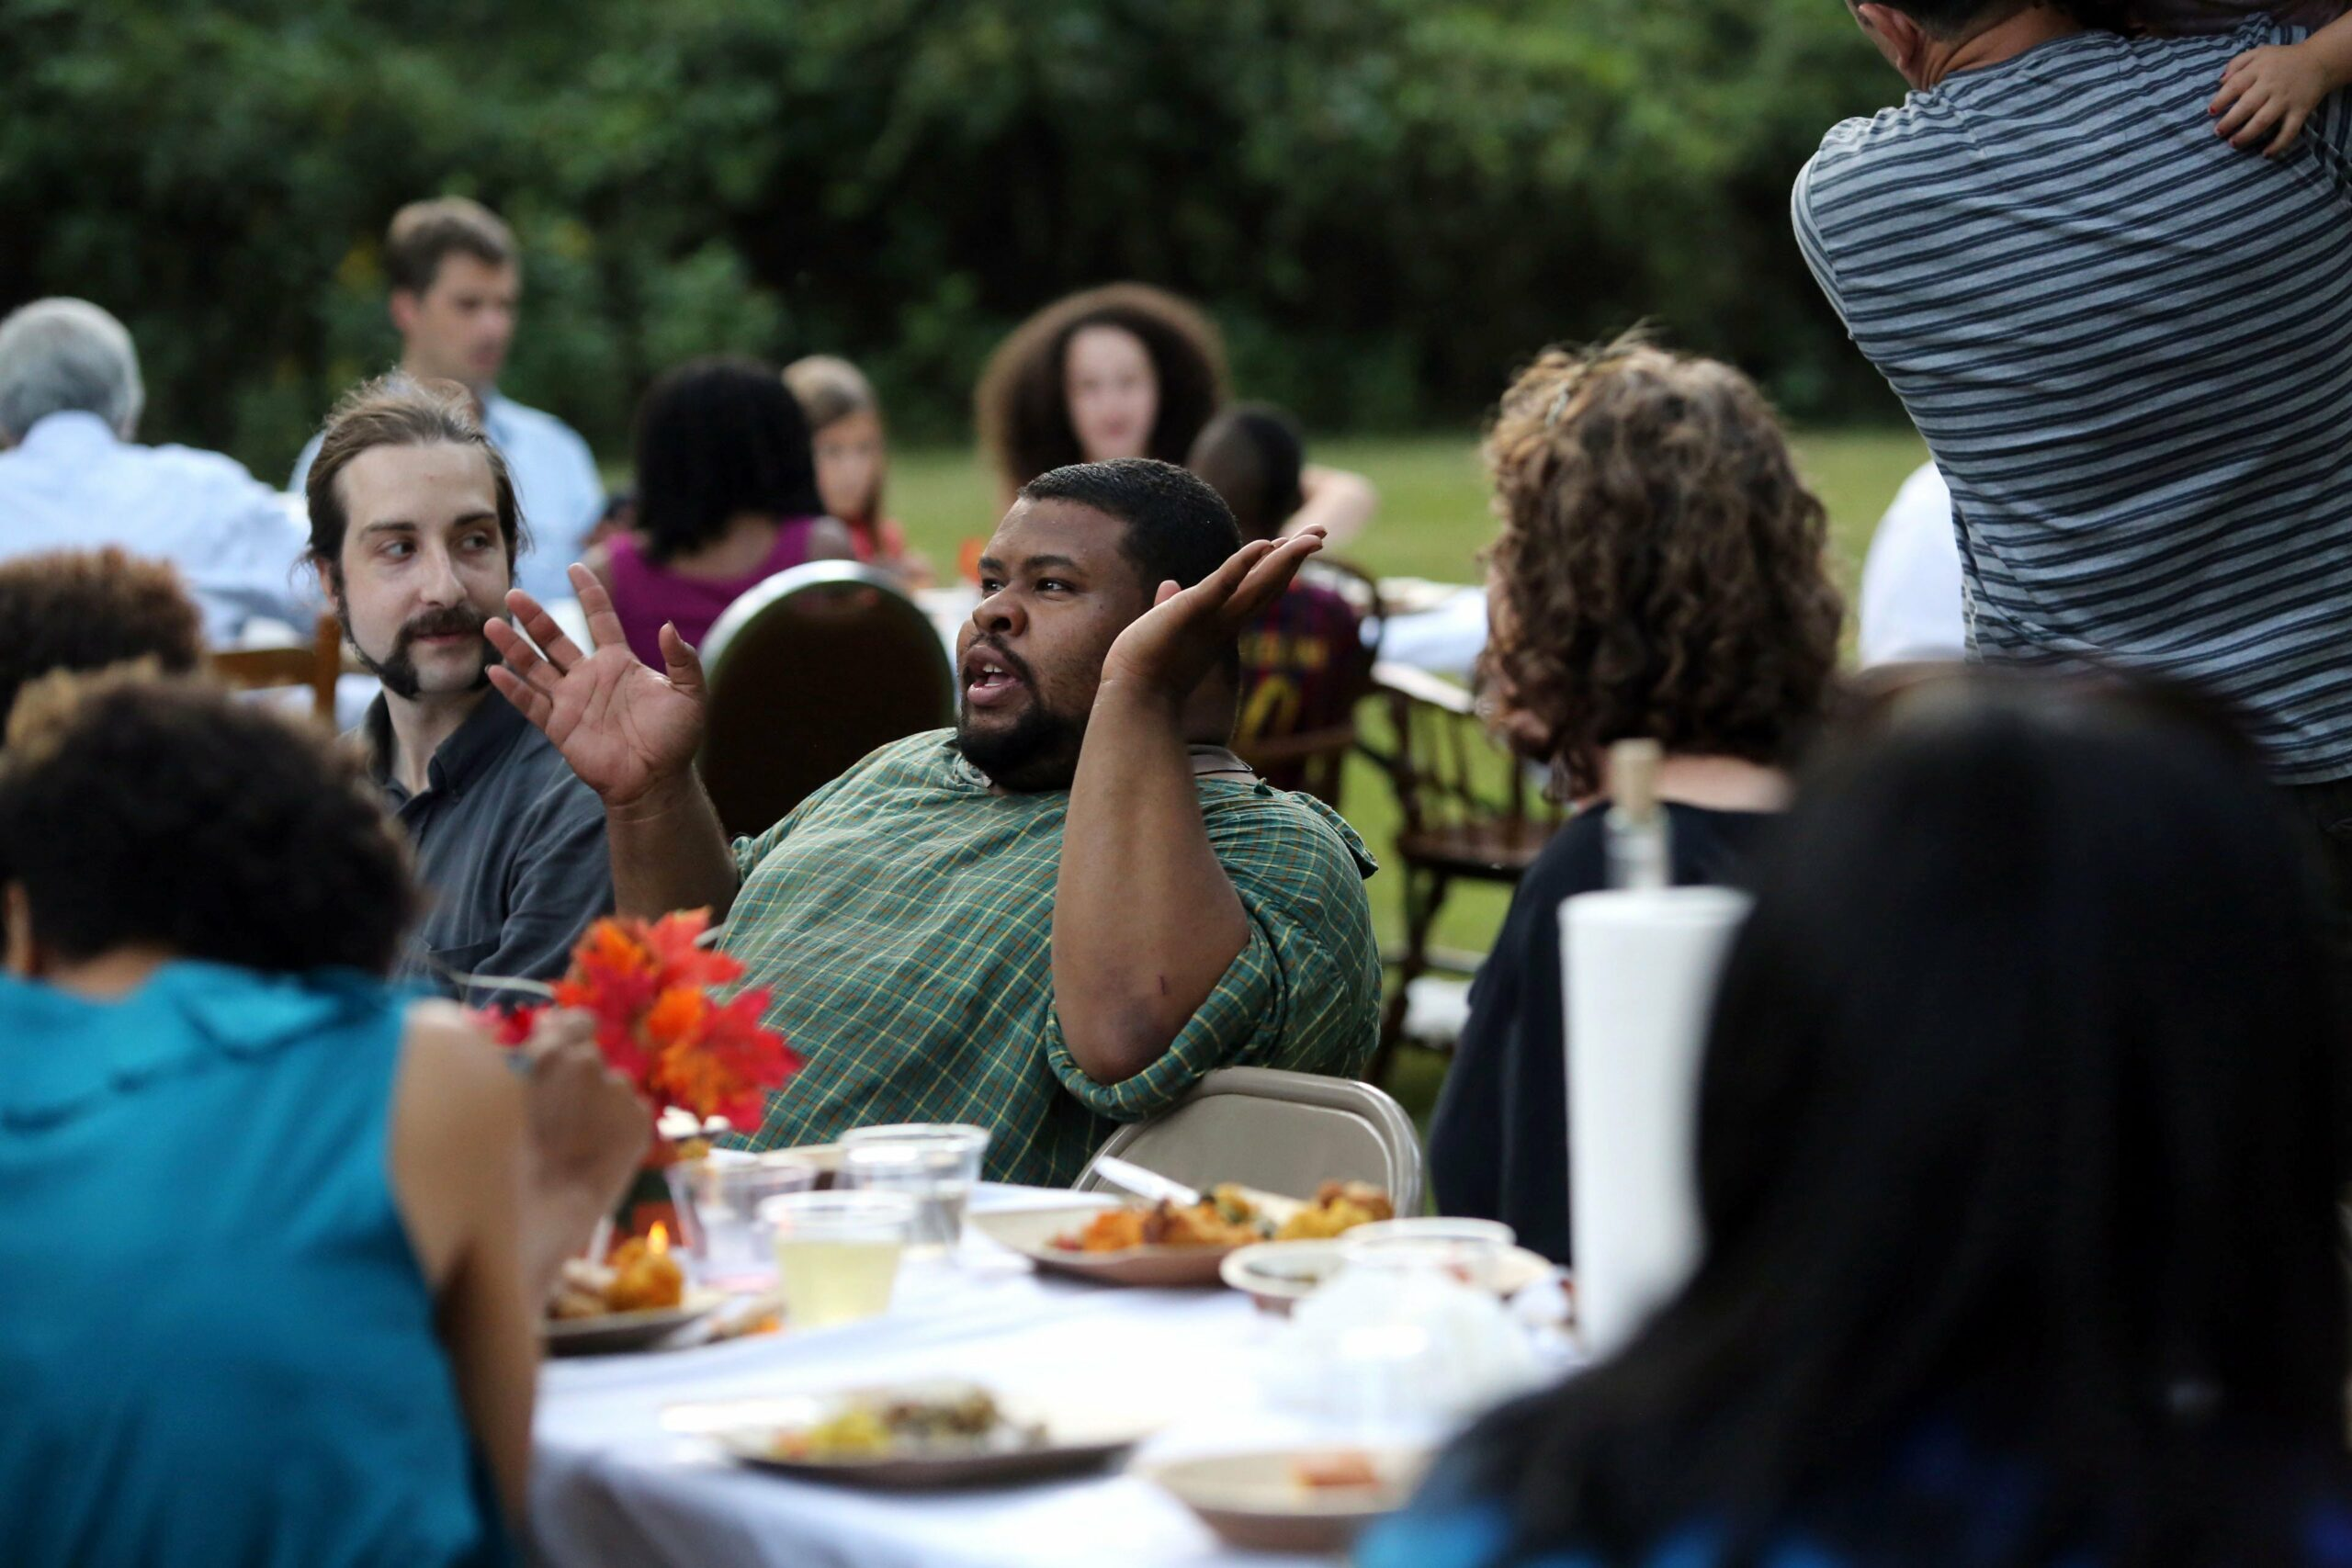 Michael Twitty at a cooking event